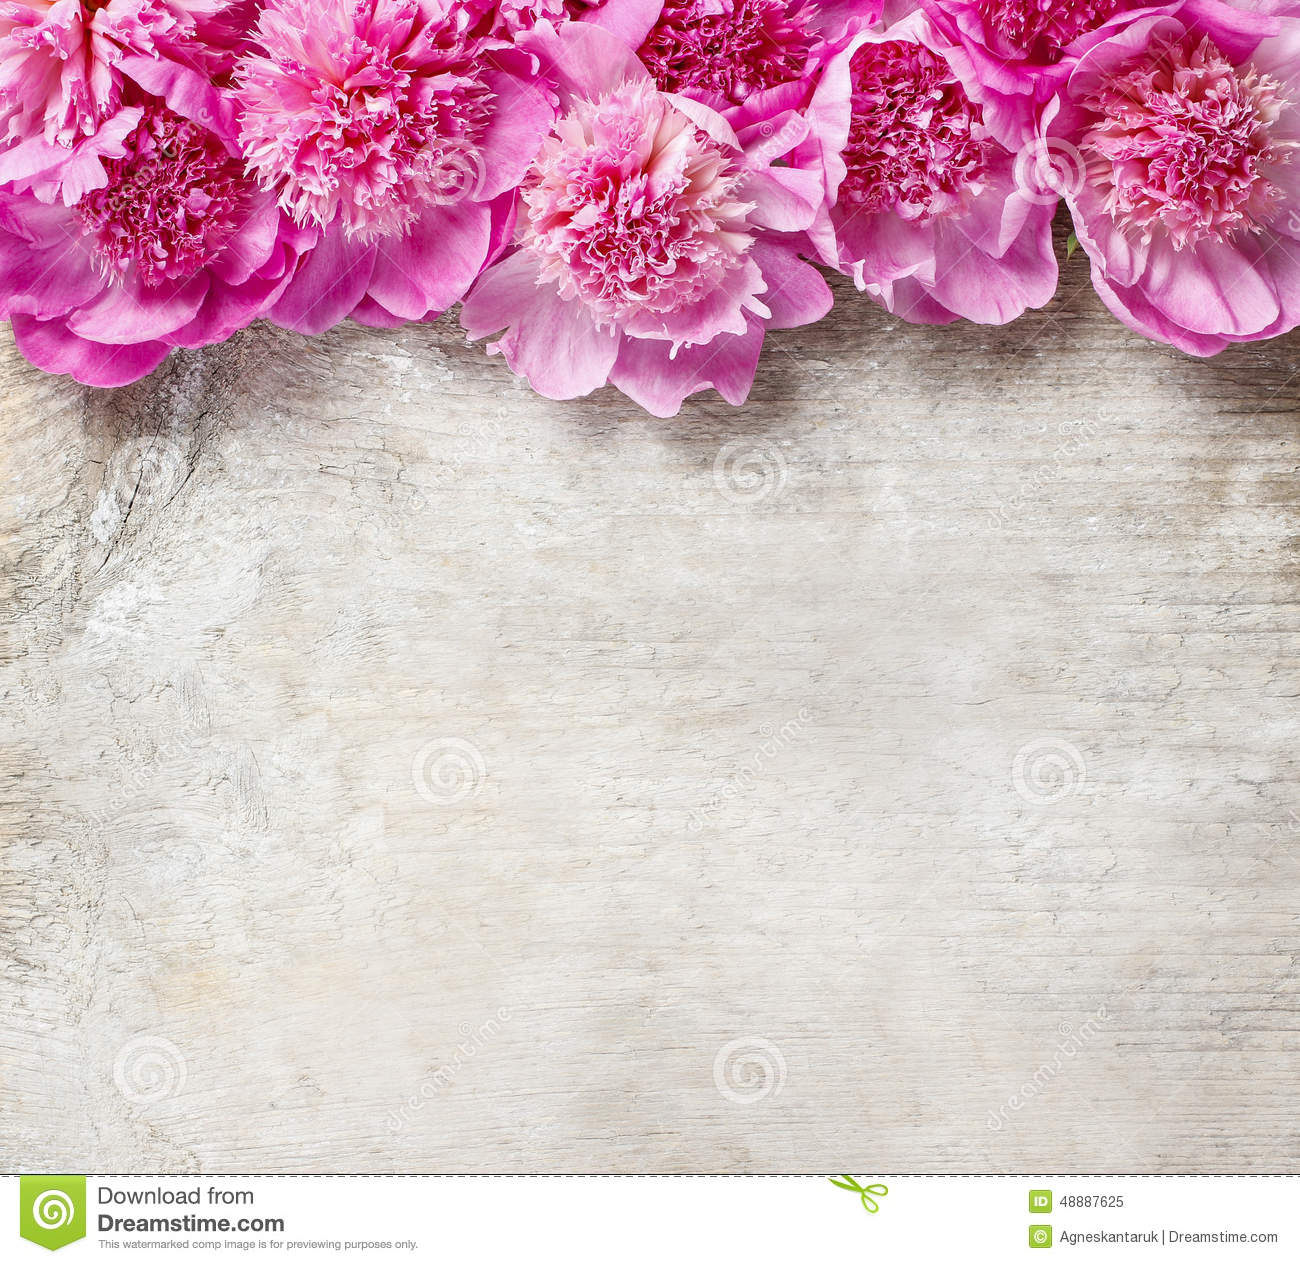 Stunning Pink Peonies On White Rustic Wooden Background Stock